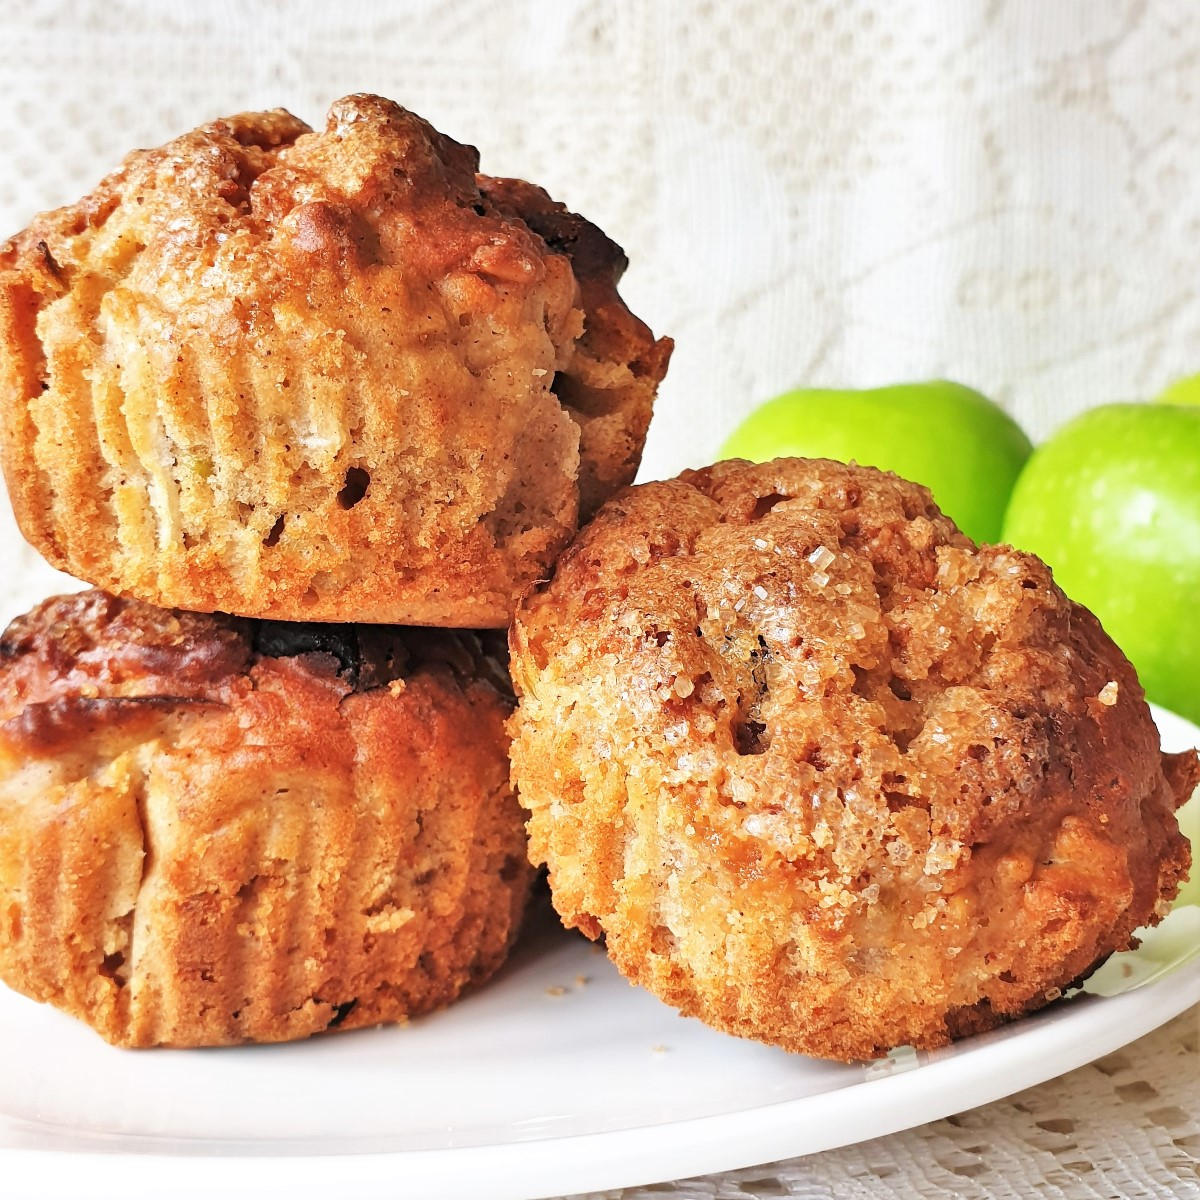 3 apple and oat muffins on a pile.